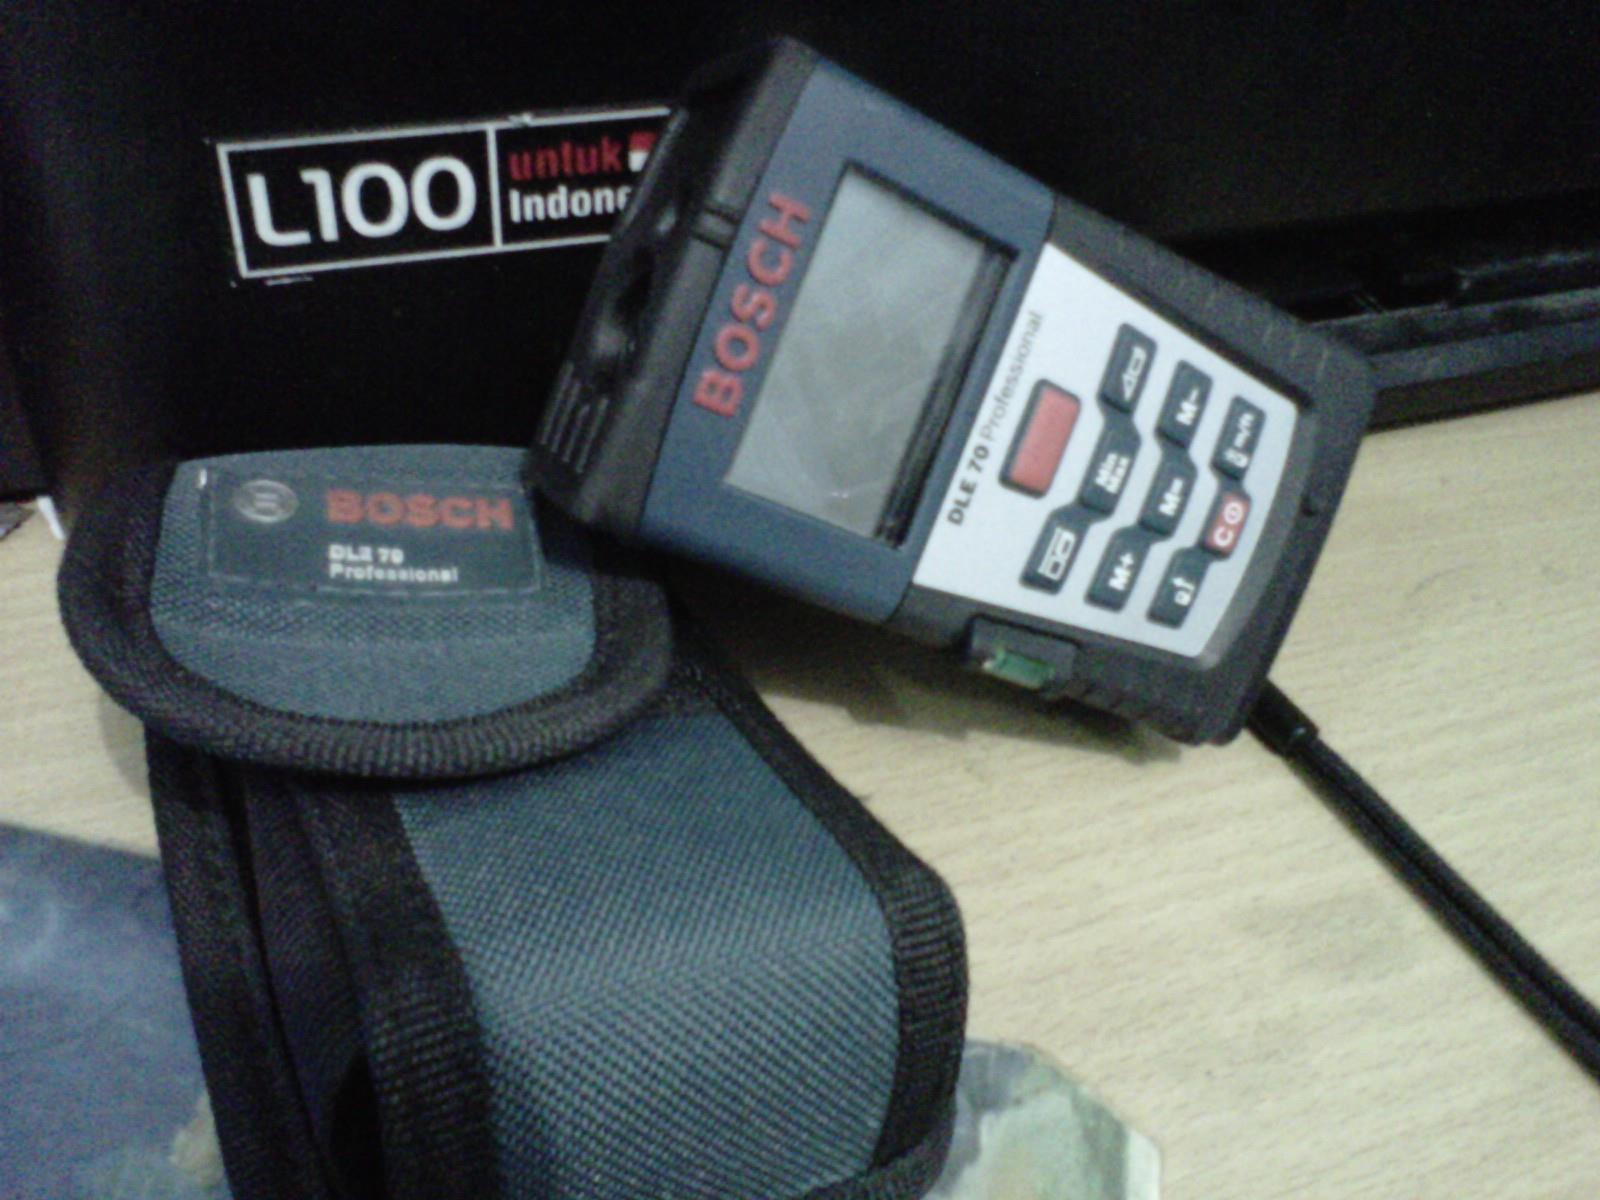 Sell Bosch Dle 70 Laser Meter 081908101888 From Indonesia By Cv Tang Ampere Digital Clamp Kyoritsu 2010 Buana Surveycheap Price